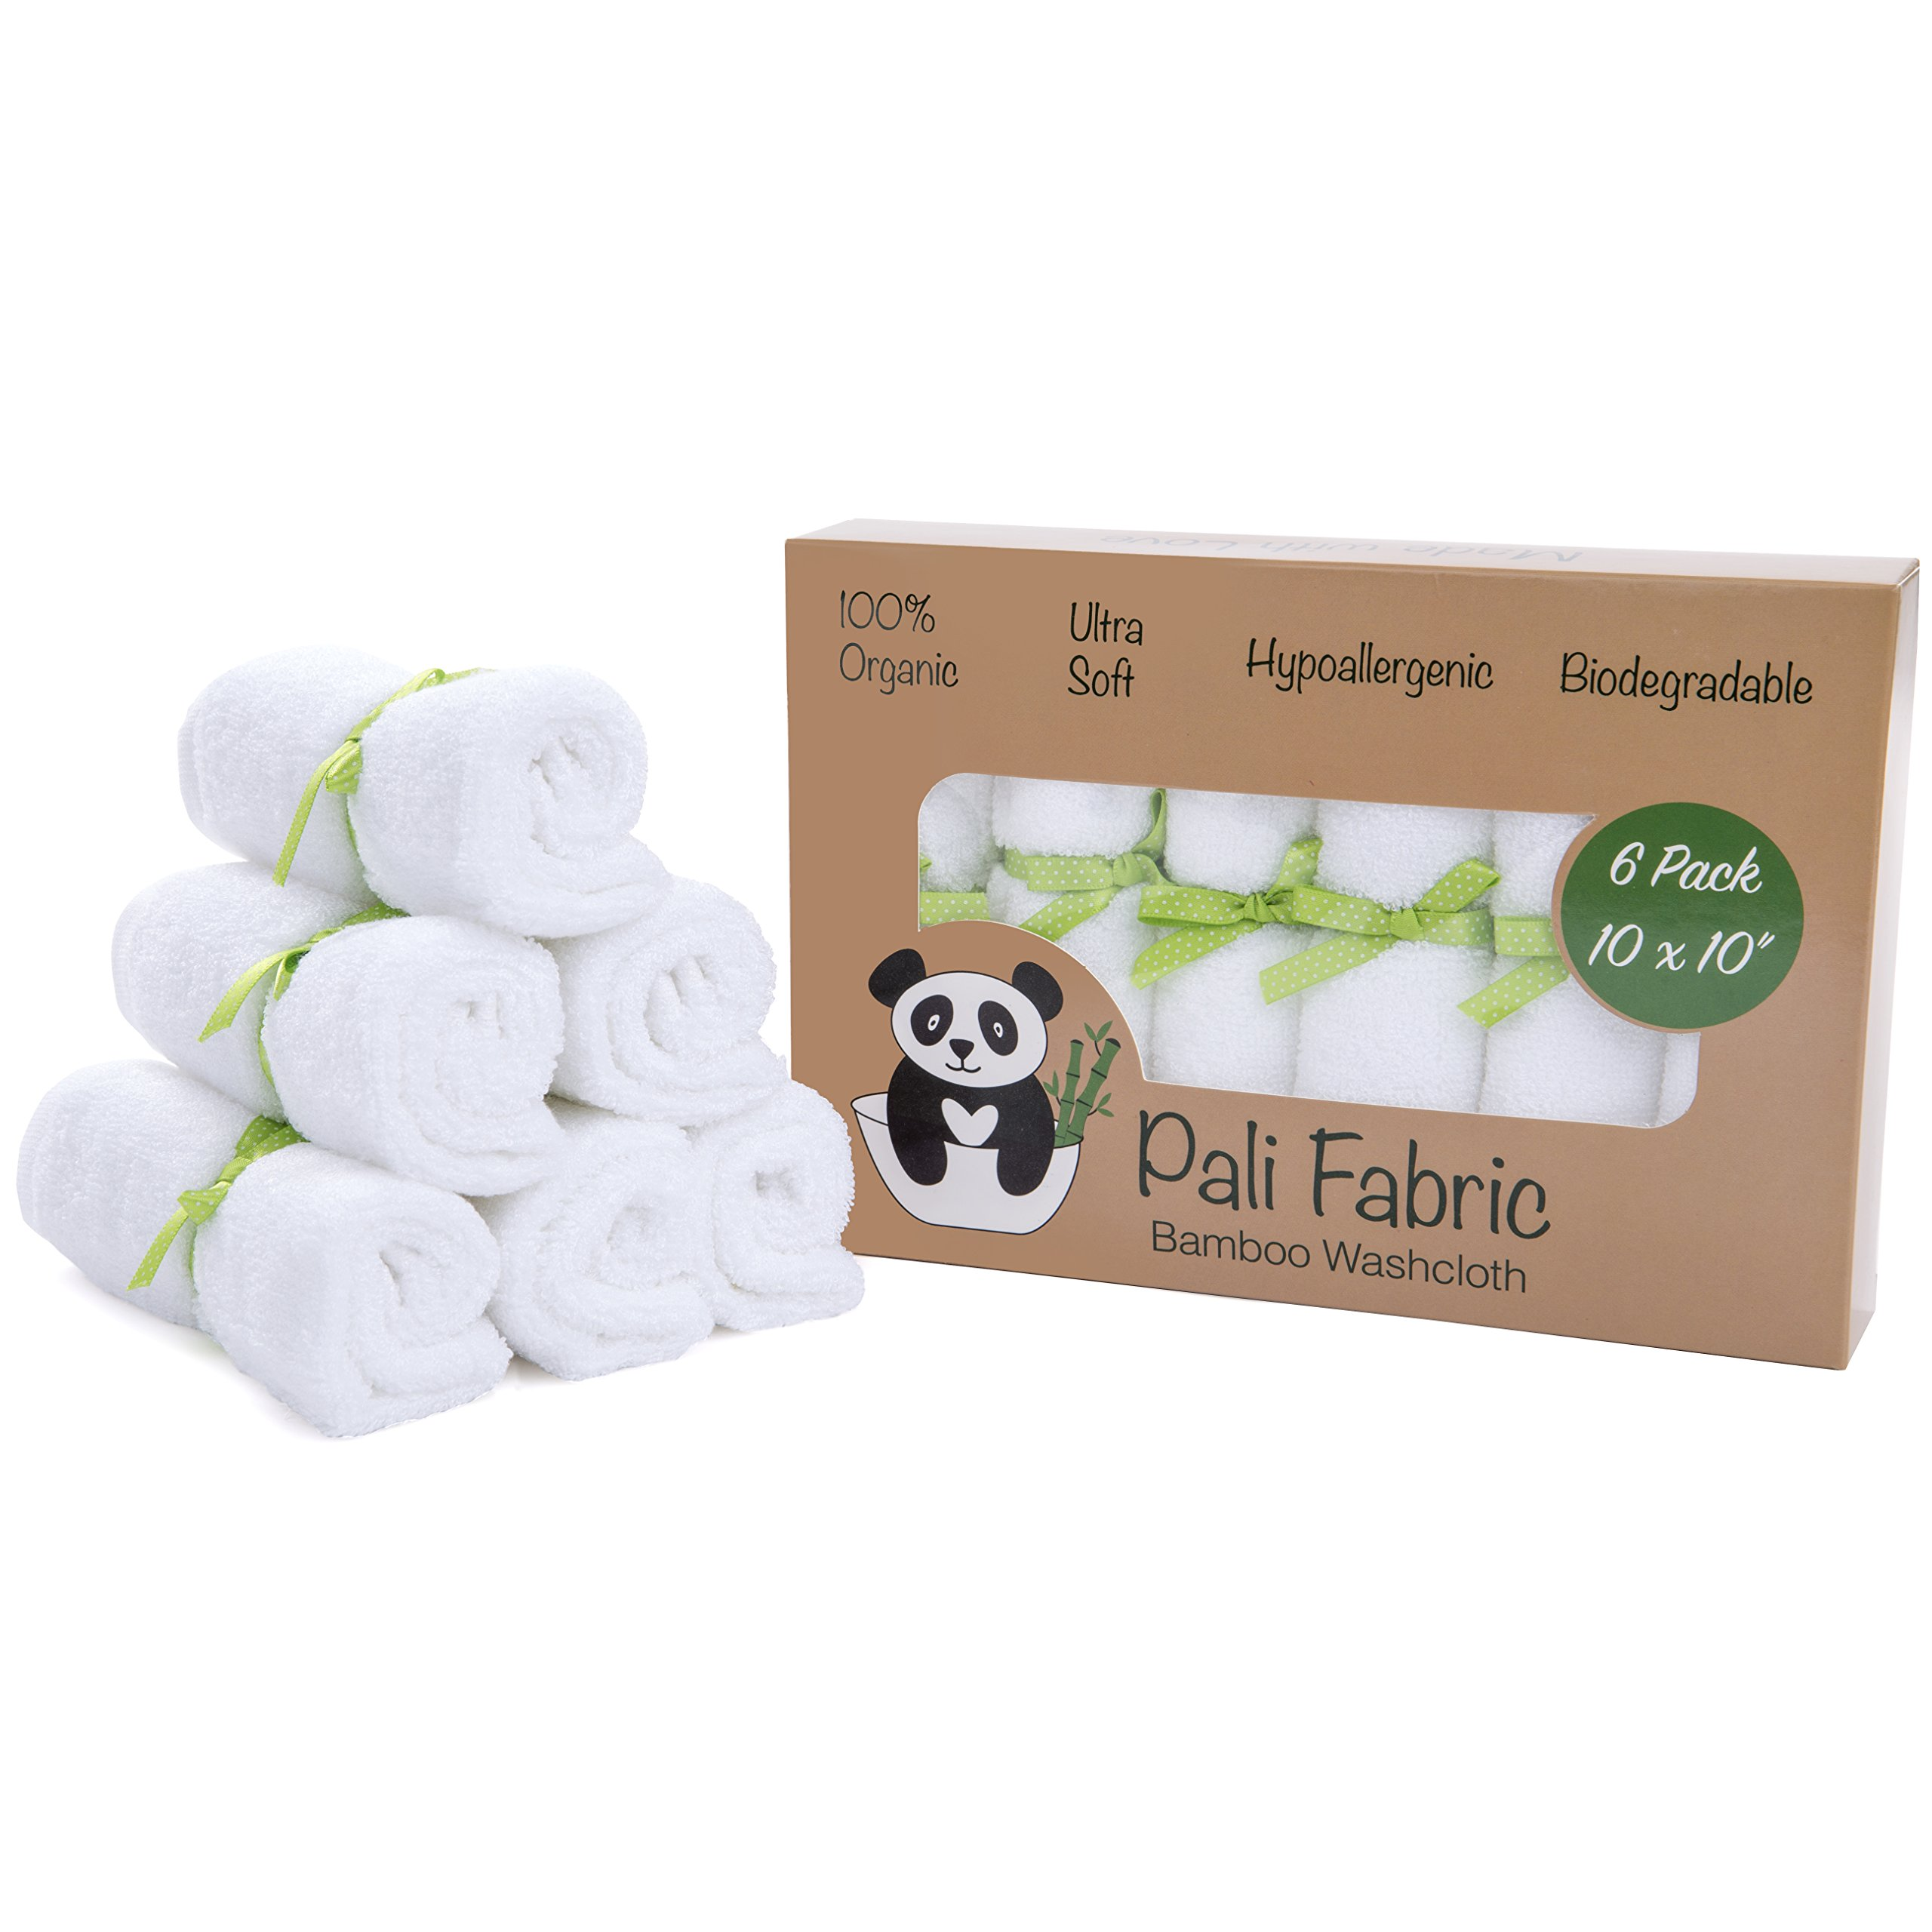 Organic Bamboo Washcloths by Pali Fabric | 100% Organic All-Natural Baby Bamboo Washcloths | Antibacterial and Hypoallergenic | Ultra Soft Bamboo Washcloths for Sensitive Skin | 10x10 inch (6 Pack)